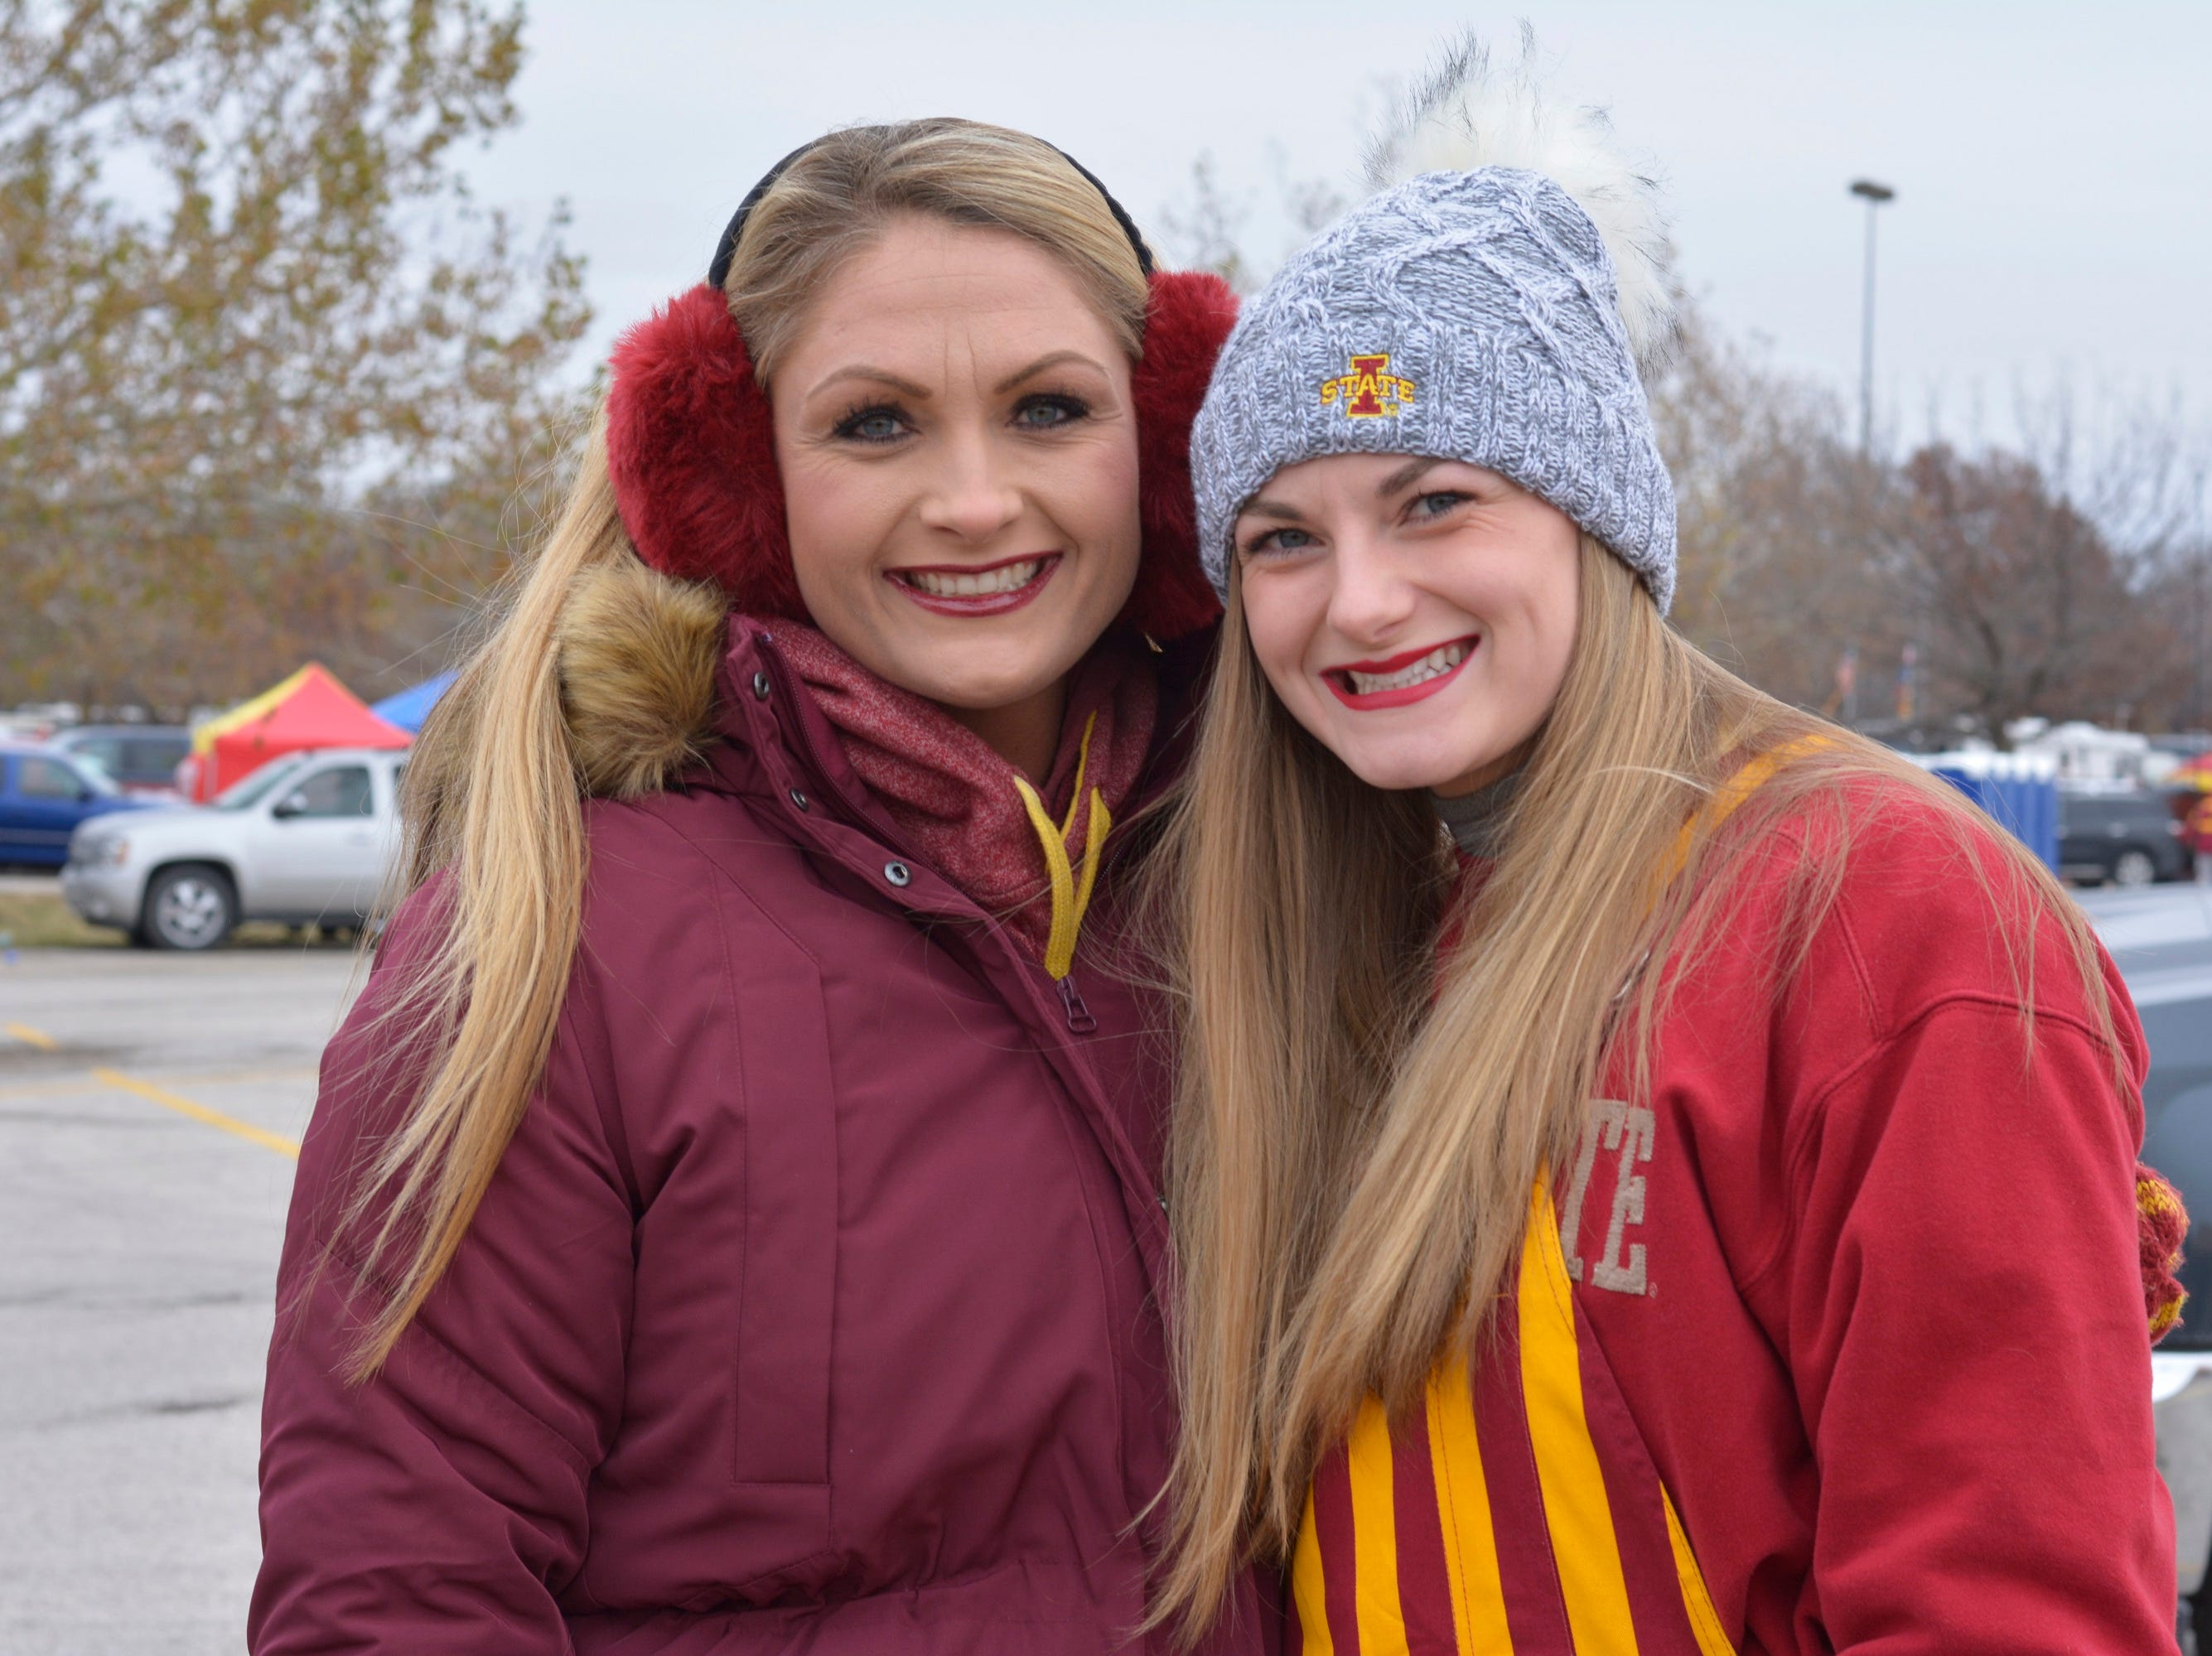 Kim Condon (left) and Kourtney Condon before the Iowa State University football game against Baylor in Ames on Nov. 10.